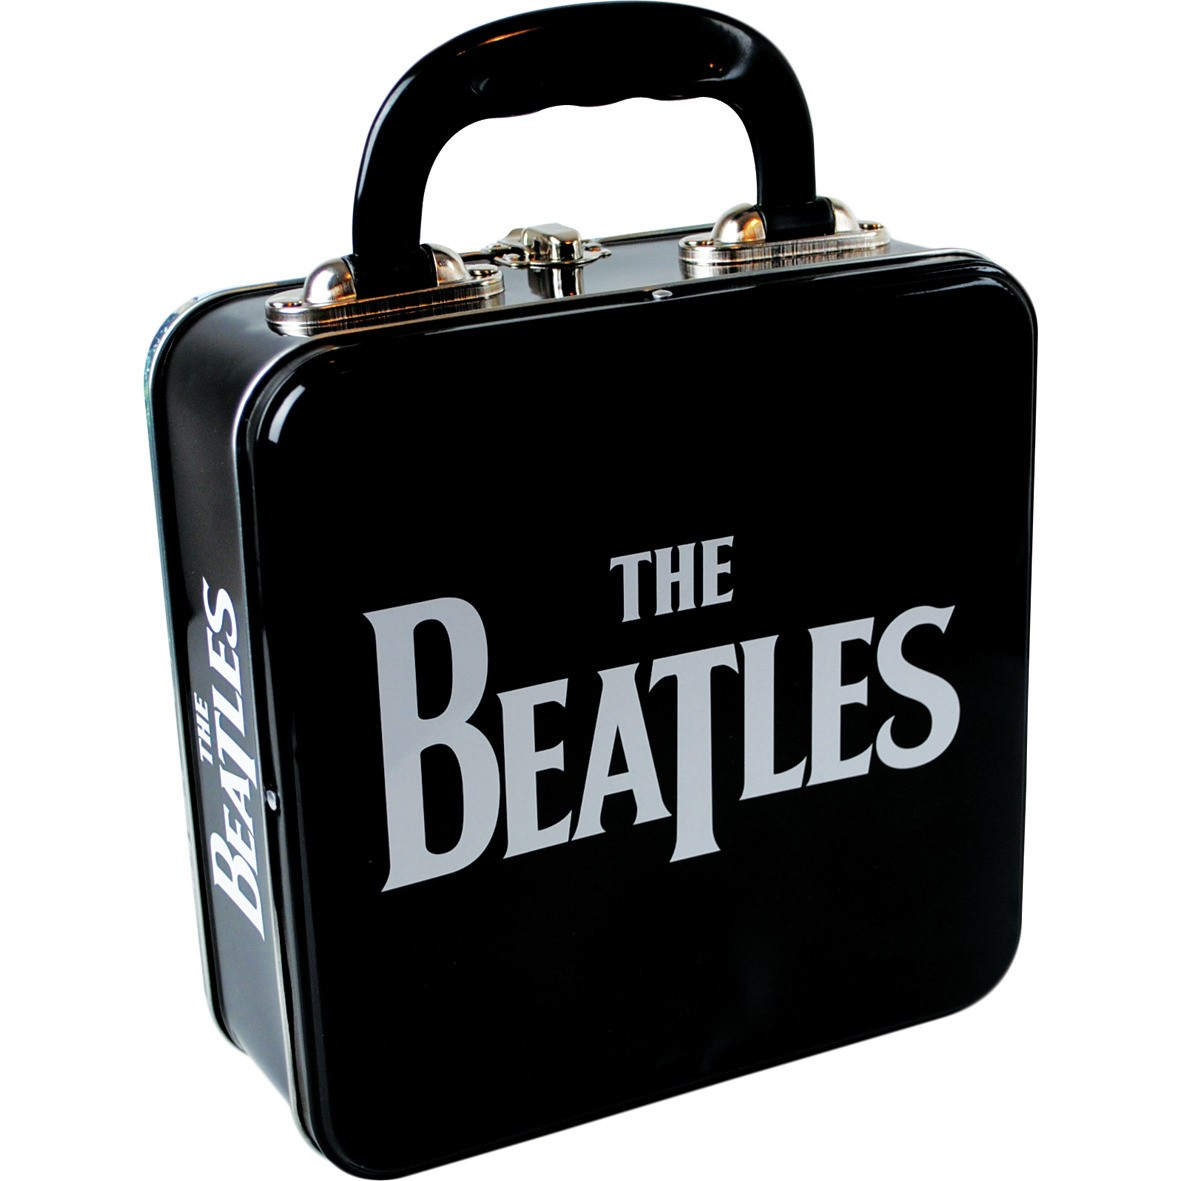 NEW BEATLES ABBEY ROAD TIN TOTE LUNCH BOX 60s 70s LP UK LENNON ALBUM COVER RINGO